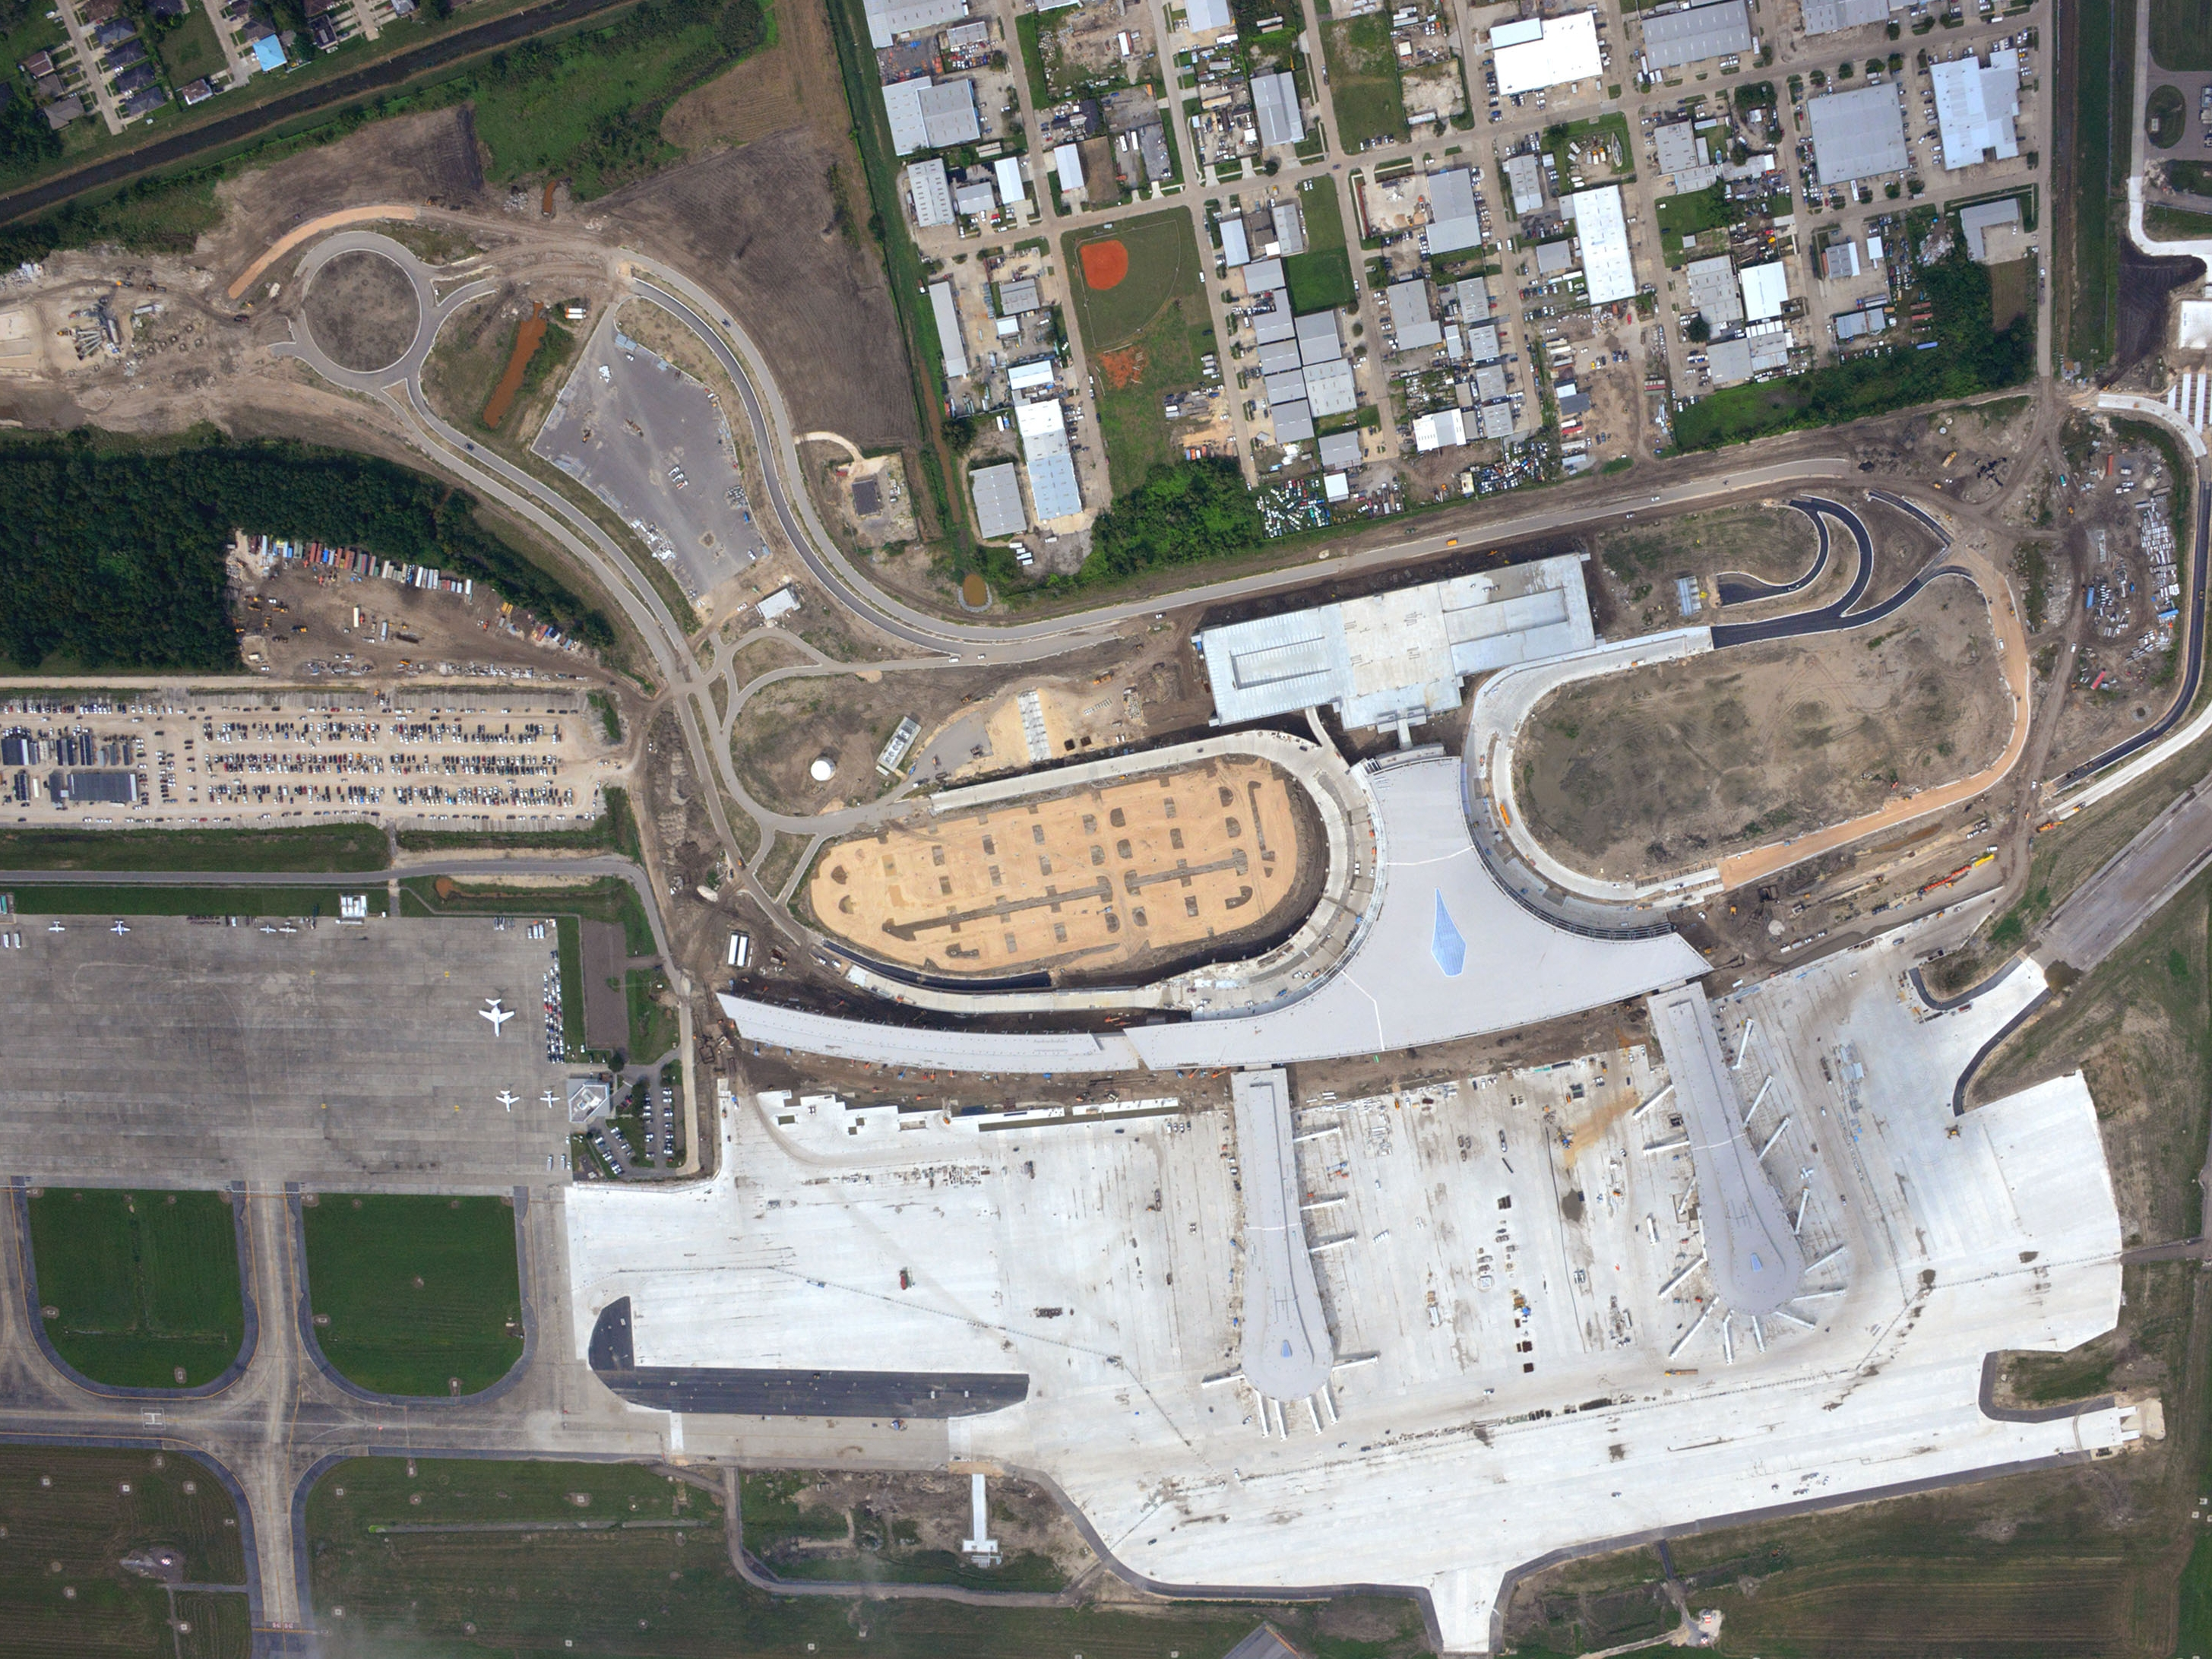 An October 2018 aerial image shows construction on New Orleans' new airport terminal. The terminal is set to open in May 2019.